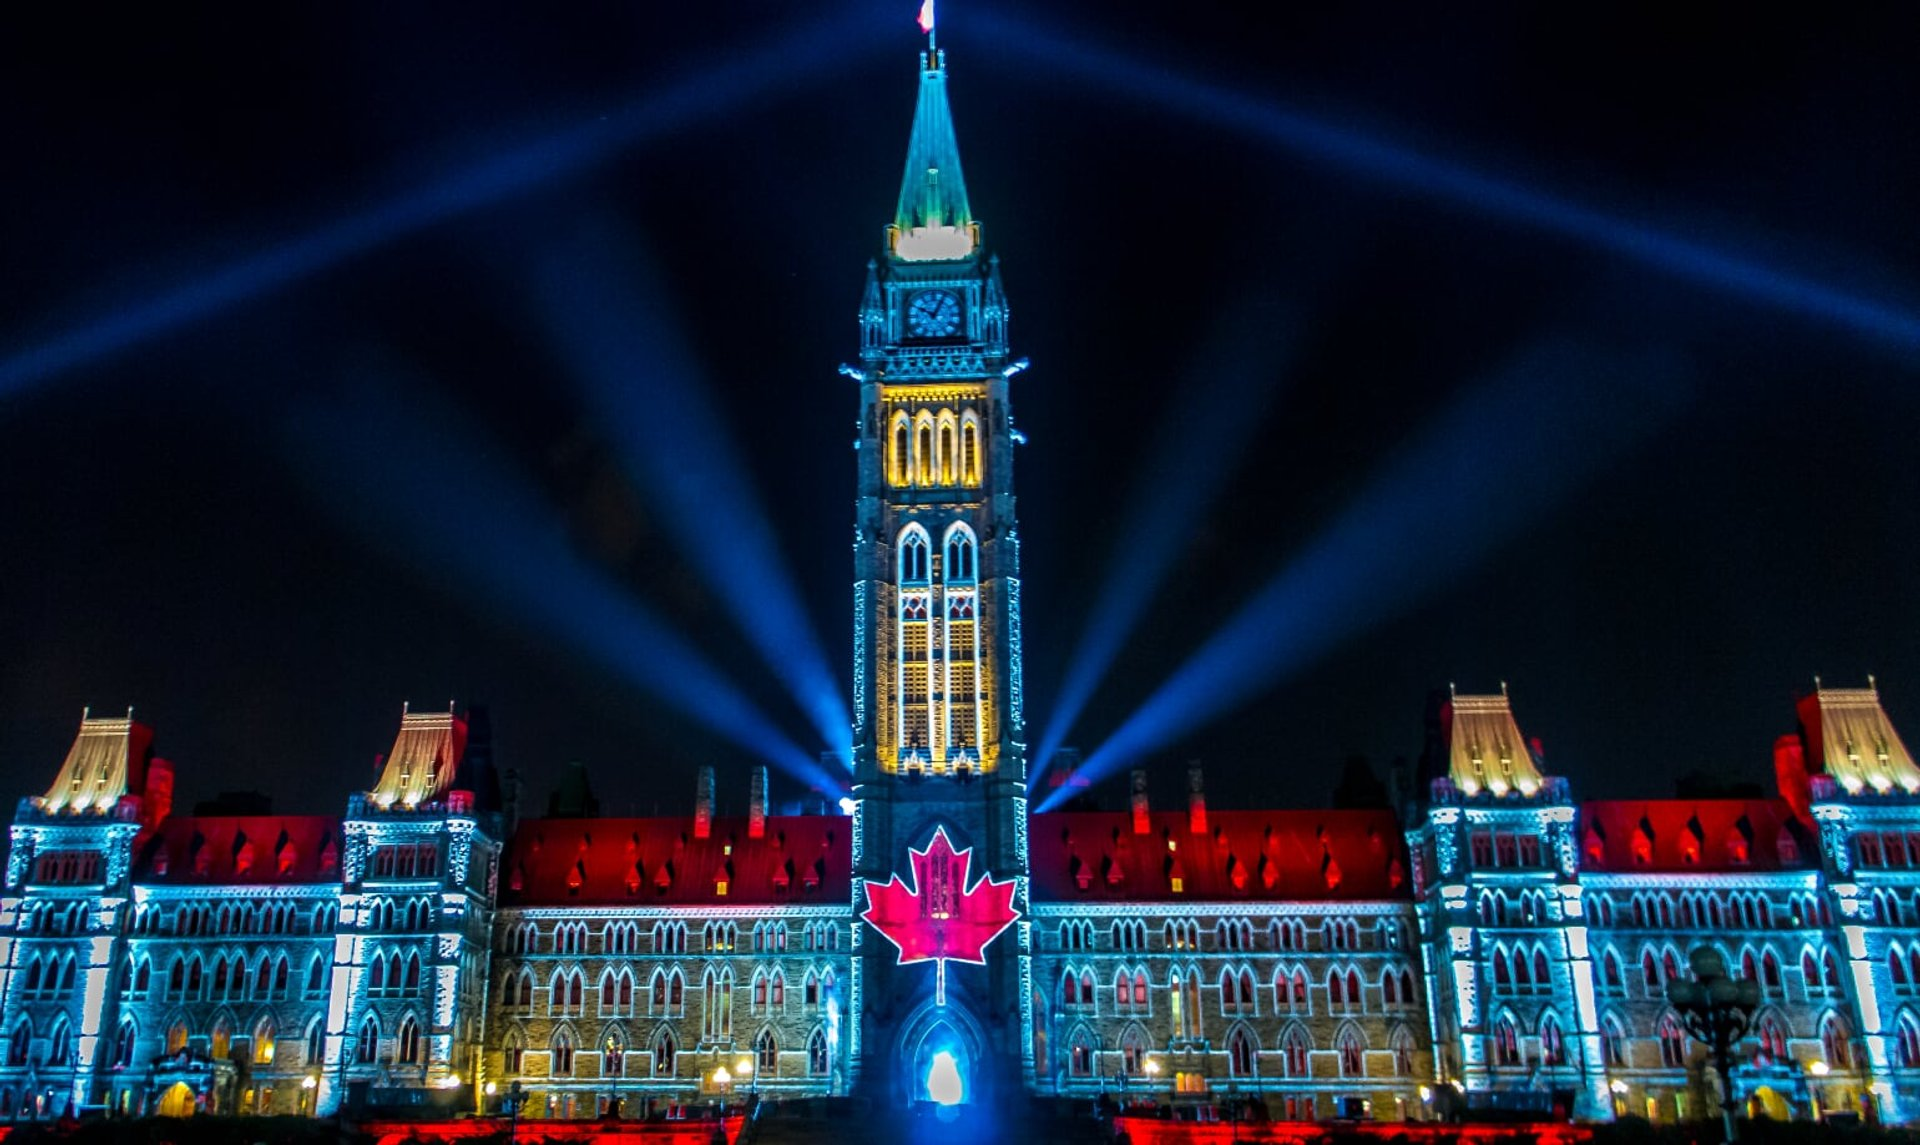 Sound and Light Show on Parliament Hill in Ottawa 2020 - Best Time